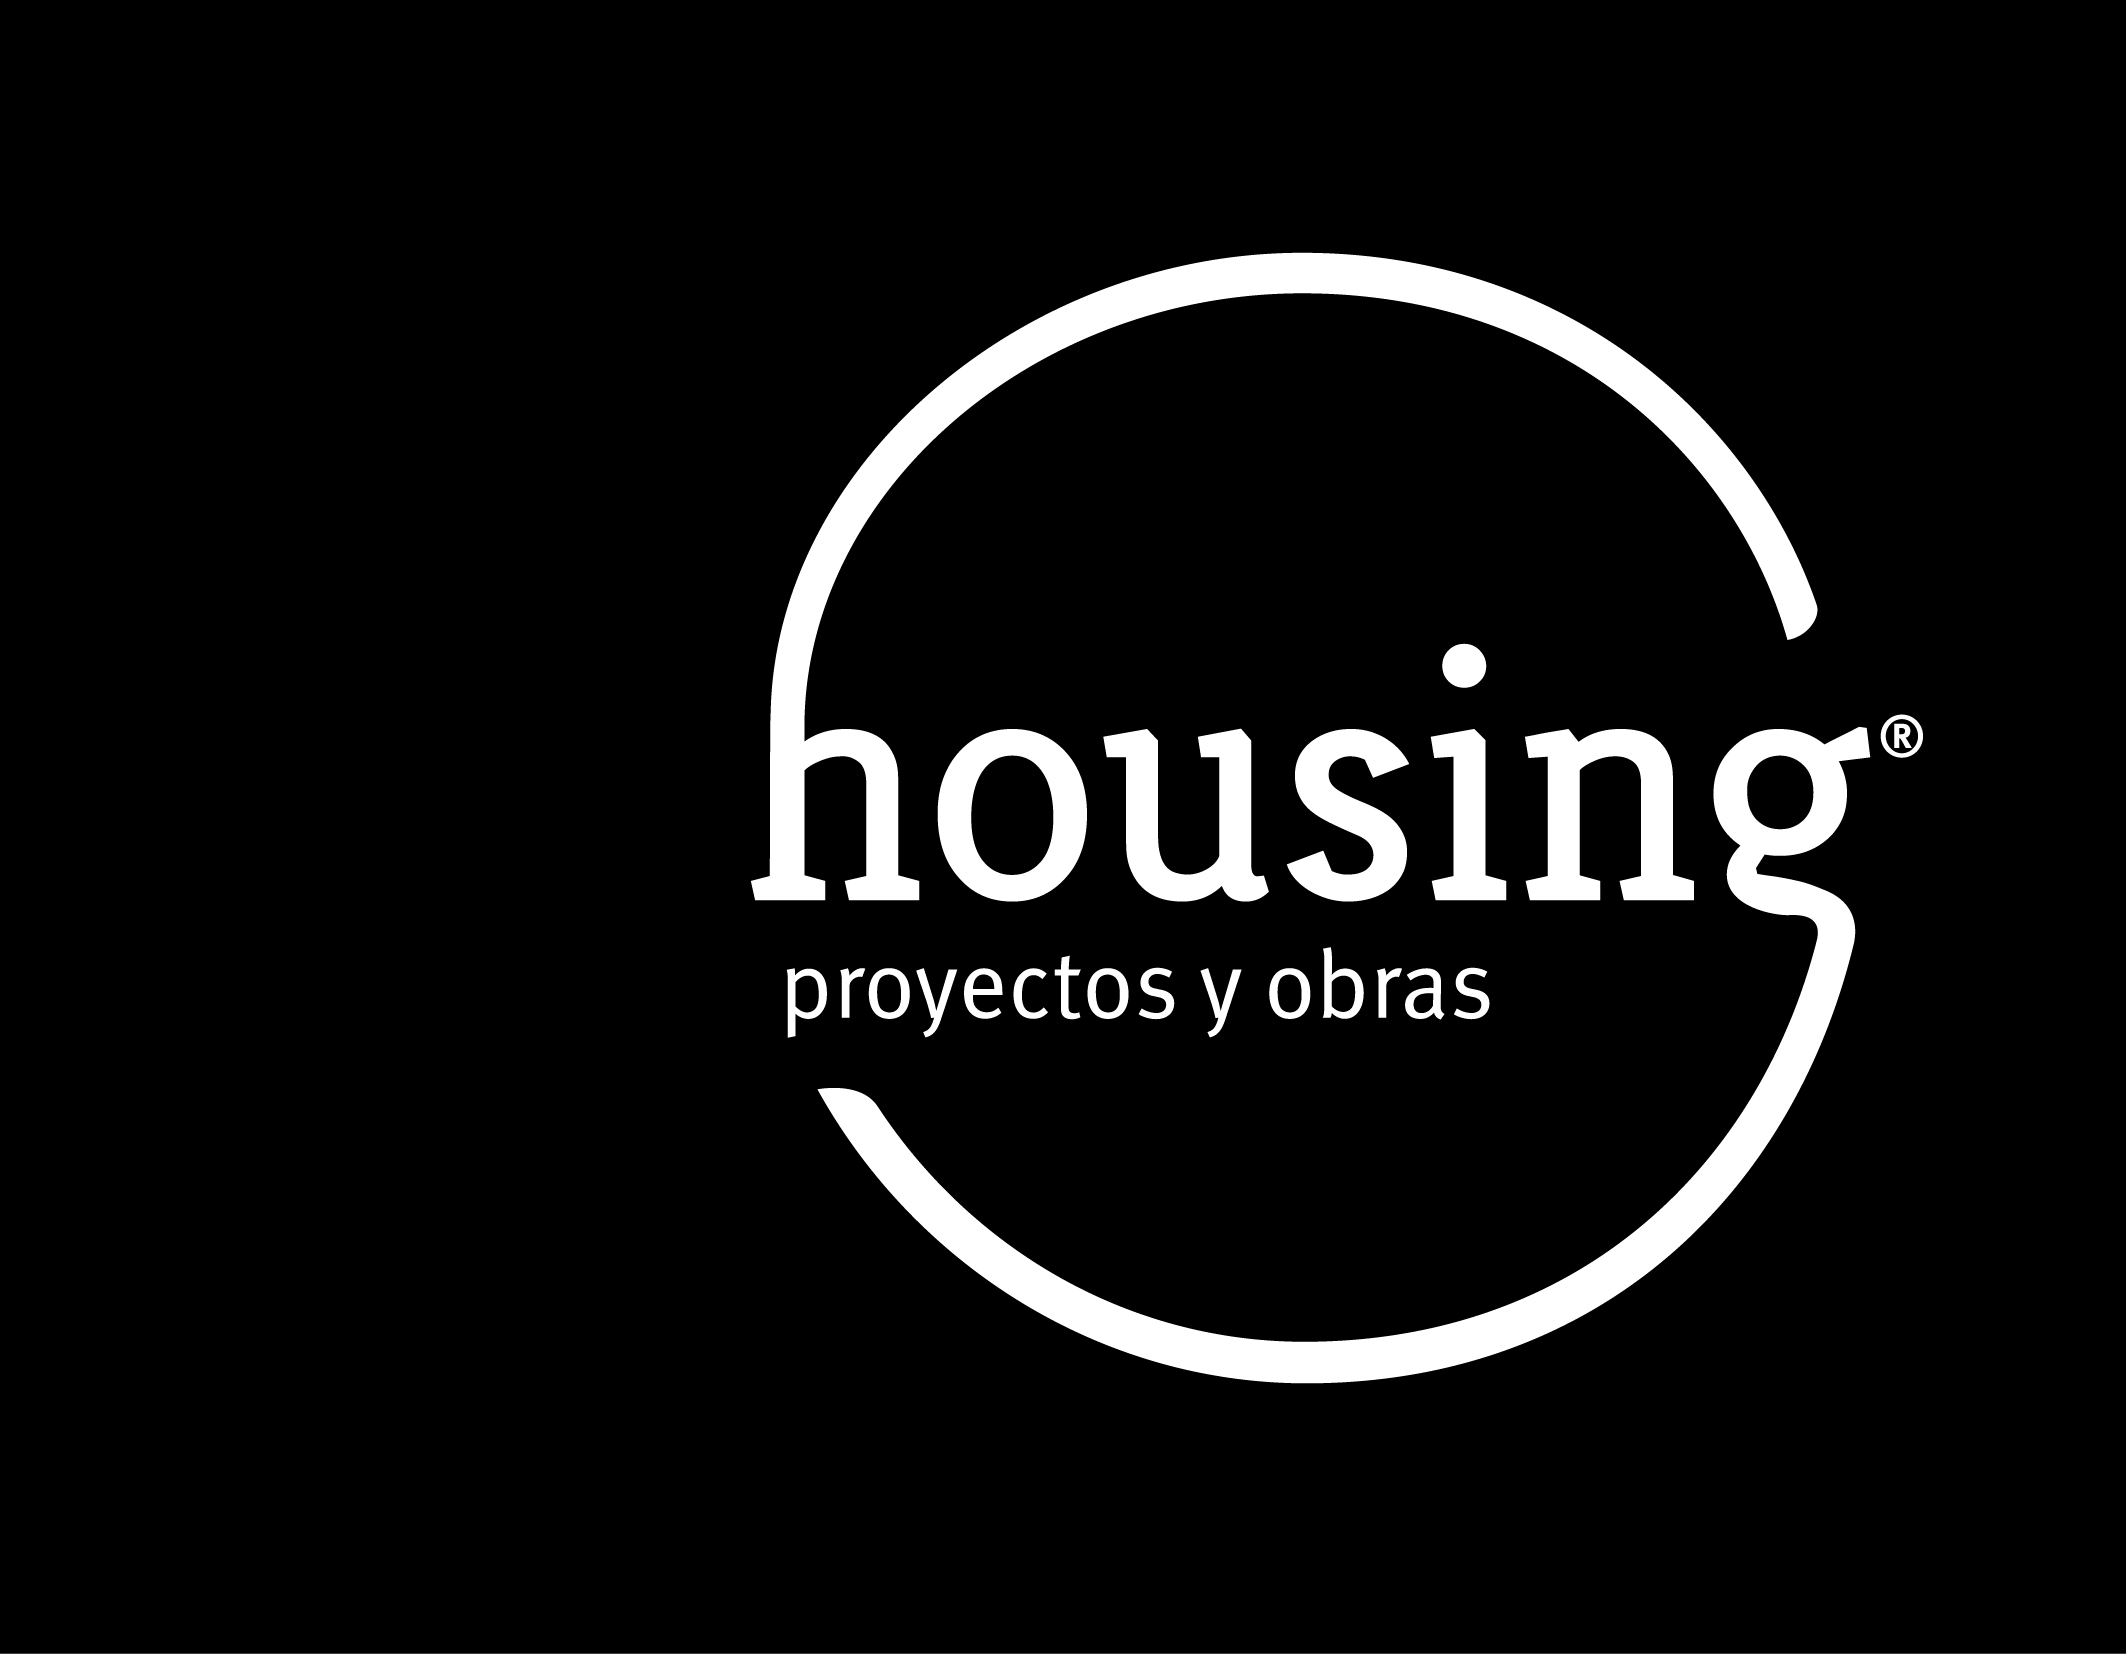 Housing Proyectos Y Obras